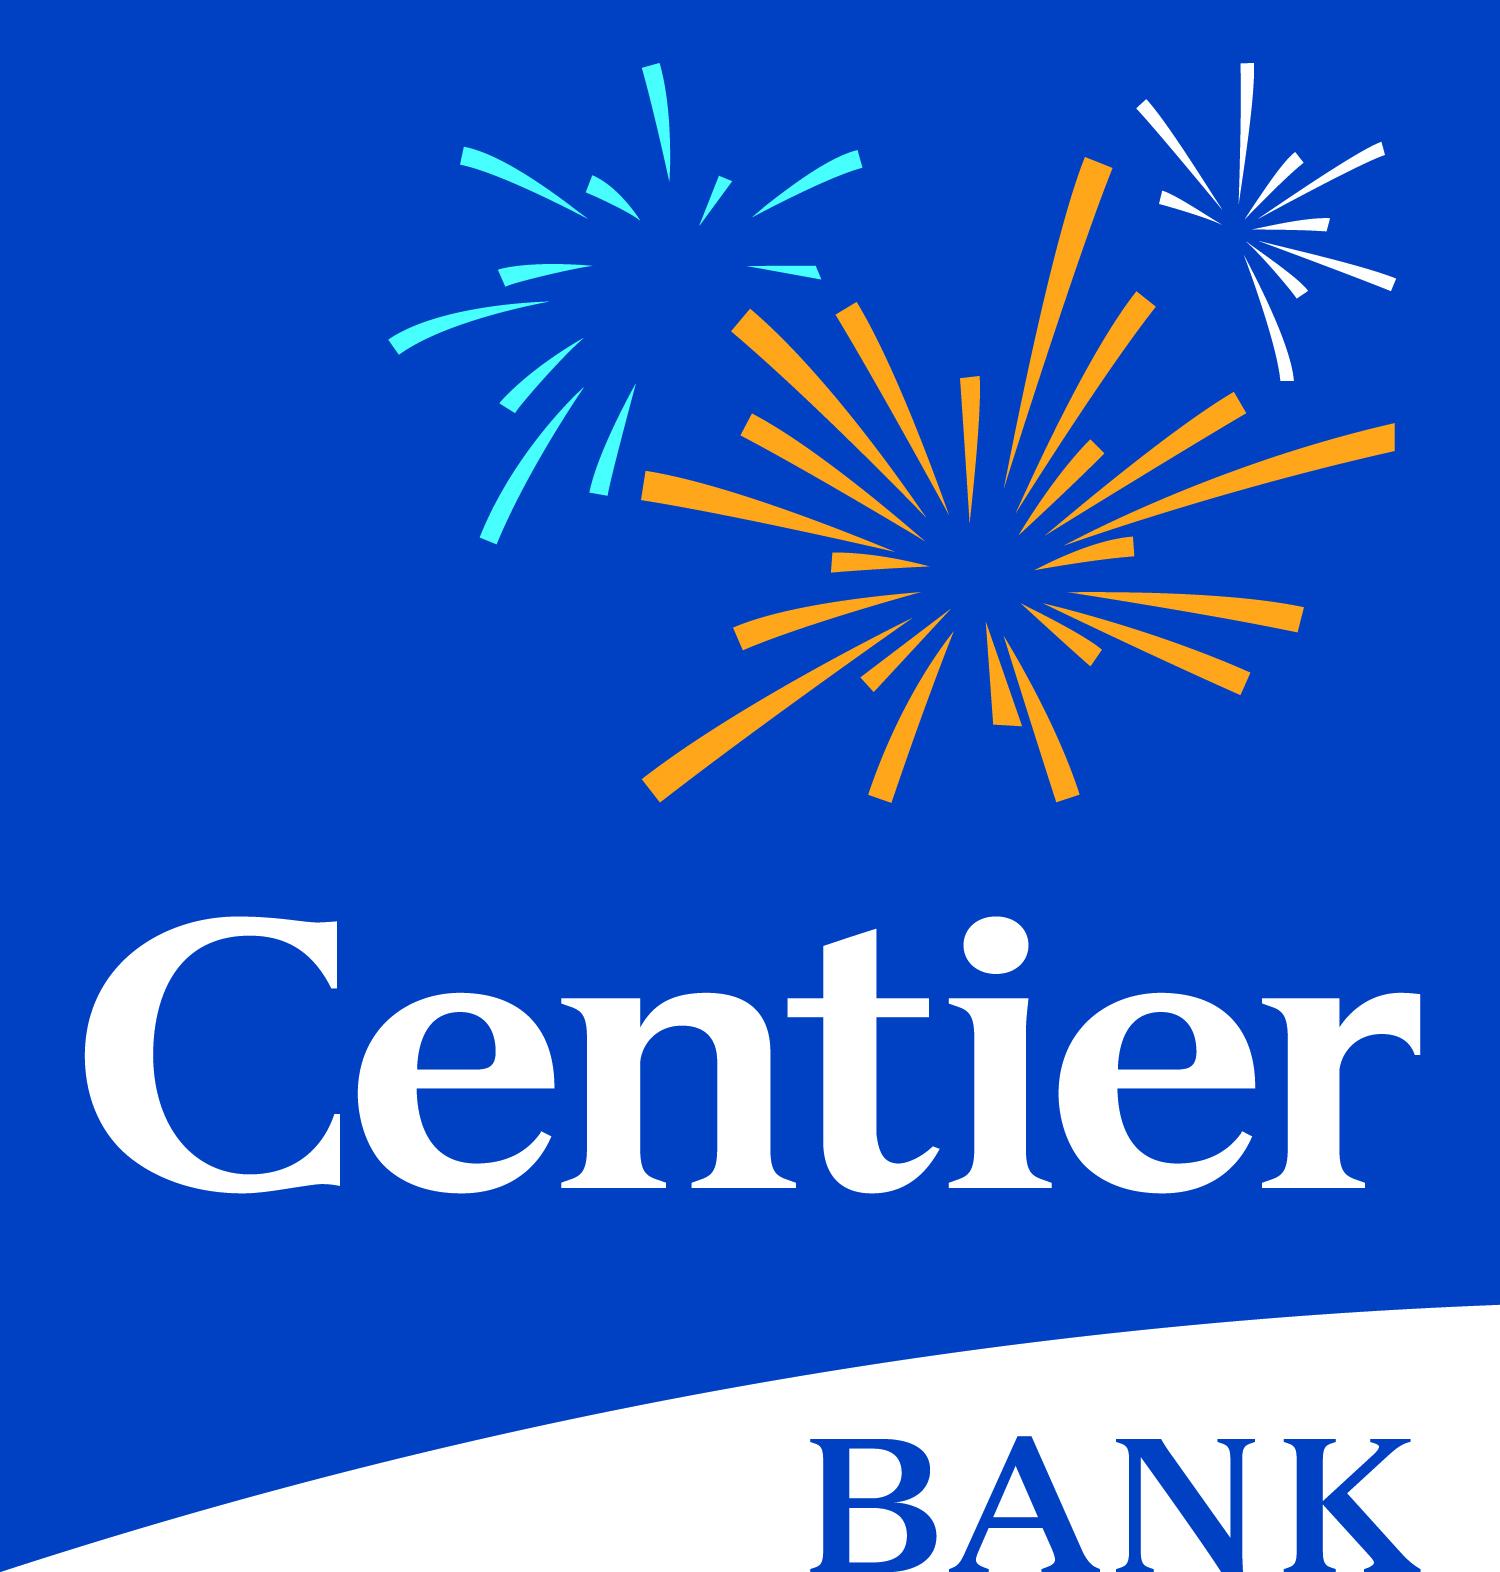 F. Centier Bank(Gold Level)